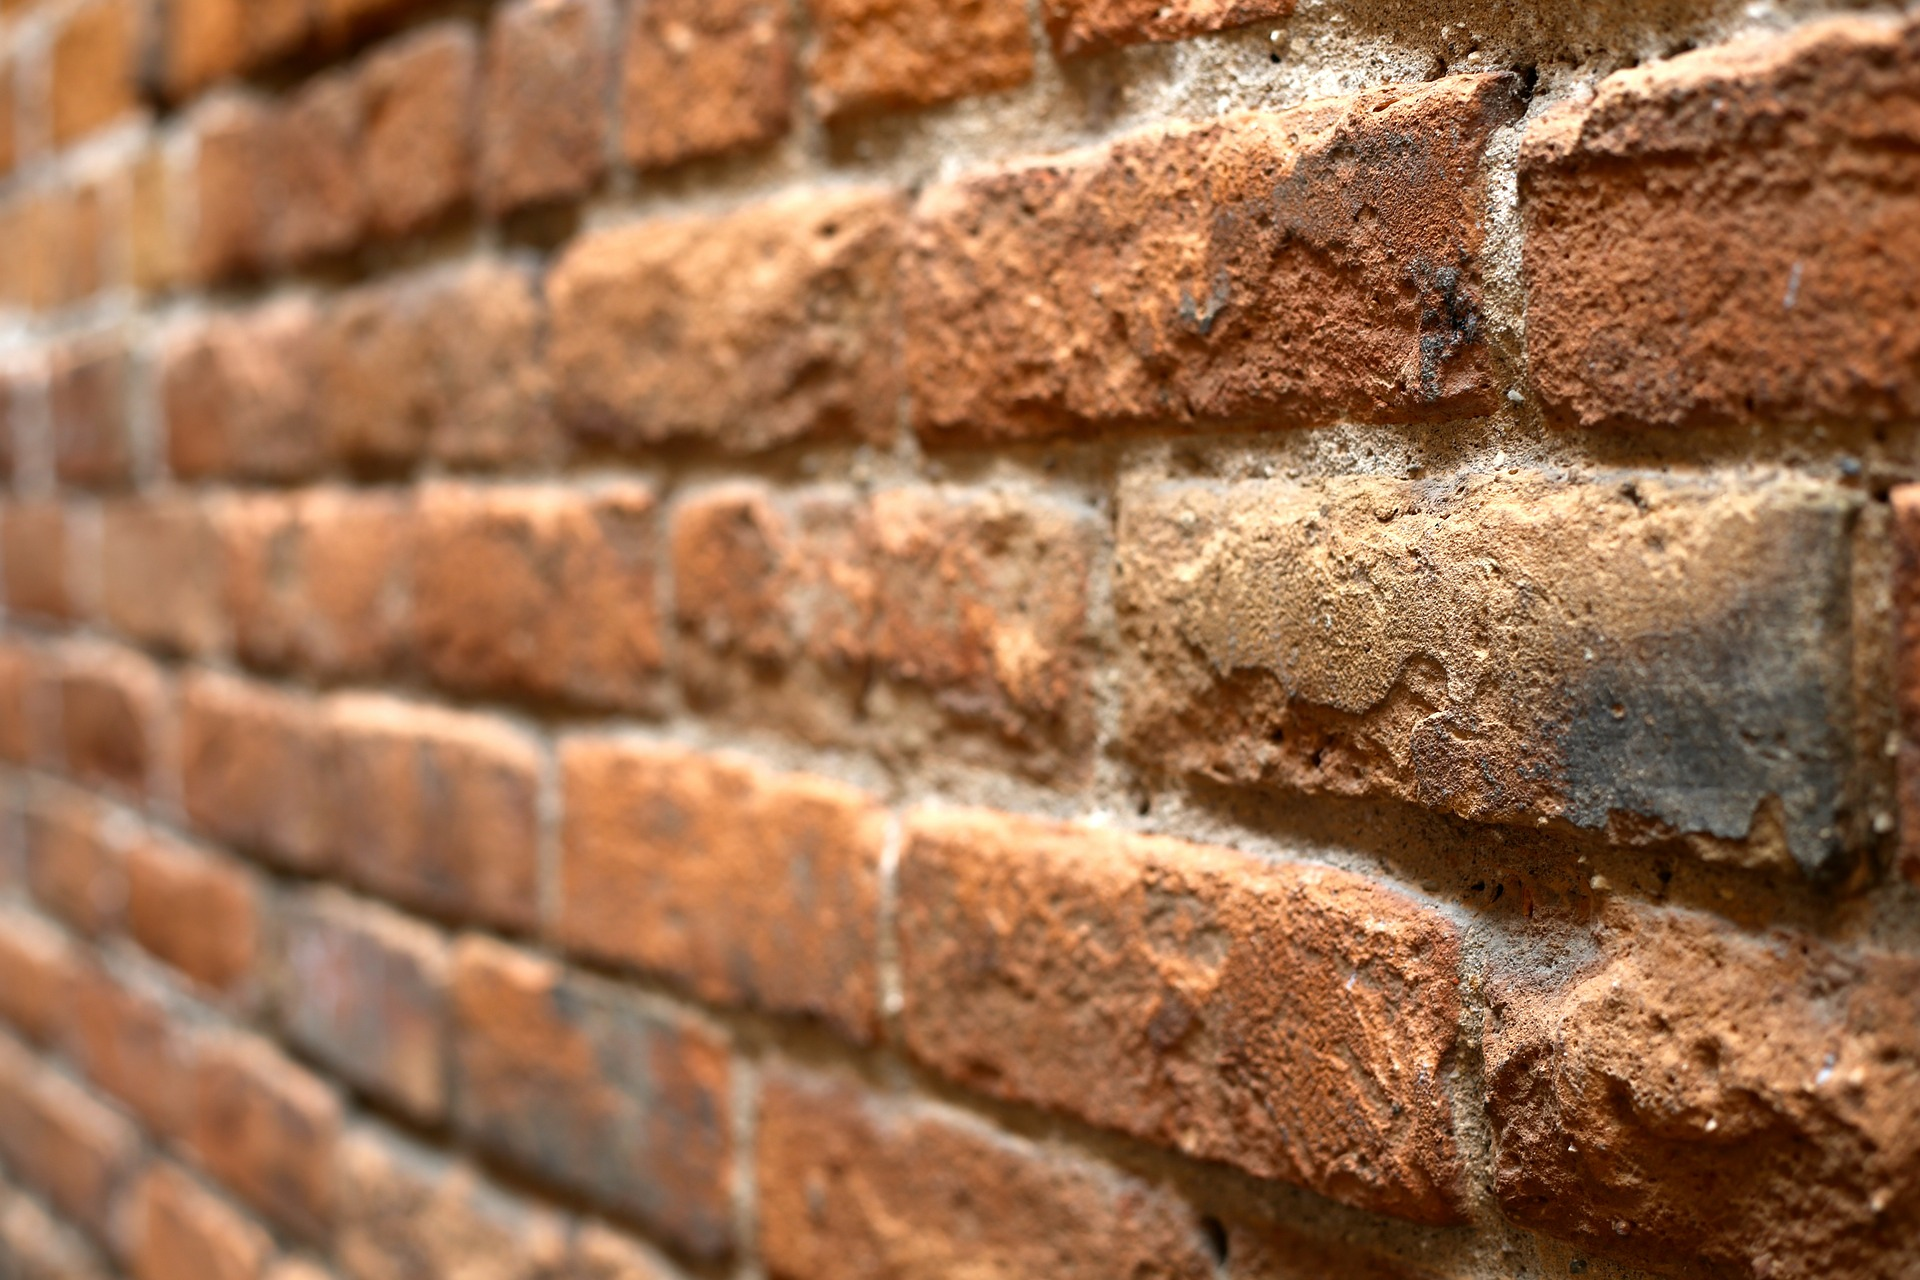 wall-of-bricks-445605_1920